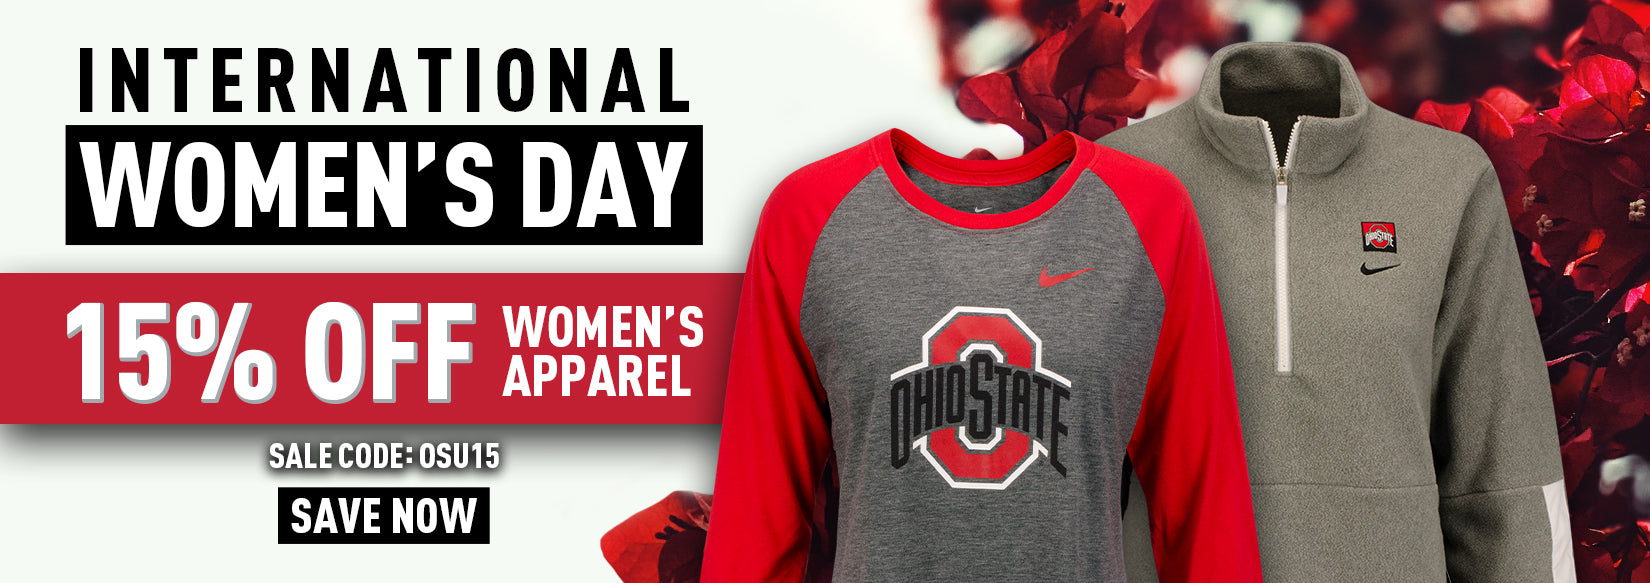 International Women's Day. 15% off women's apparel with code OSU15.